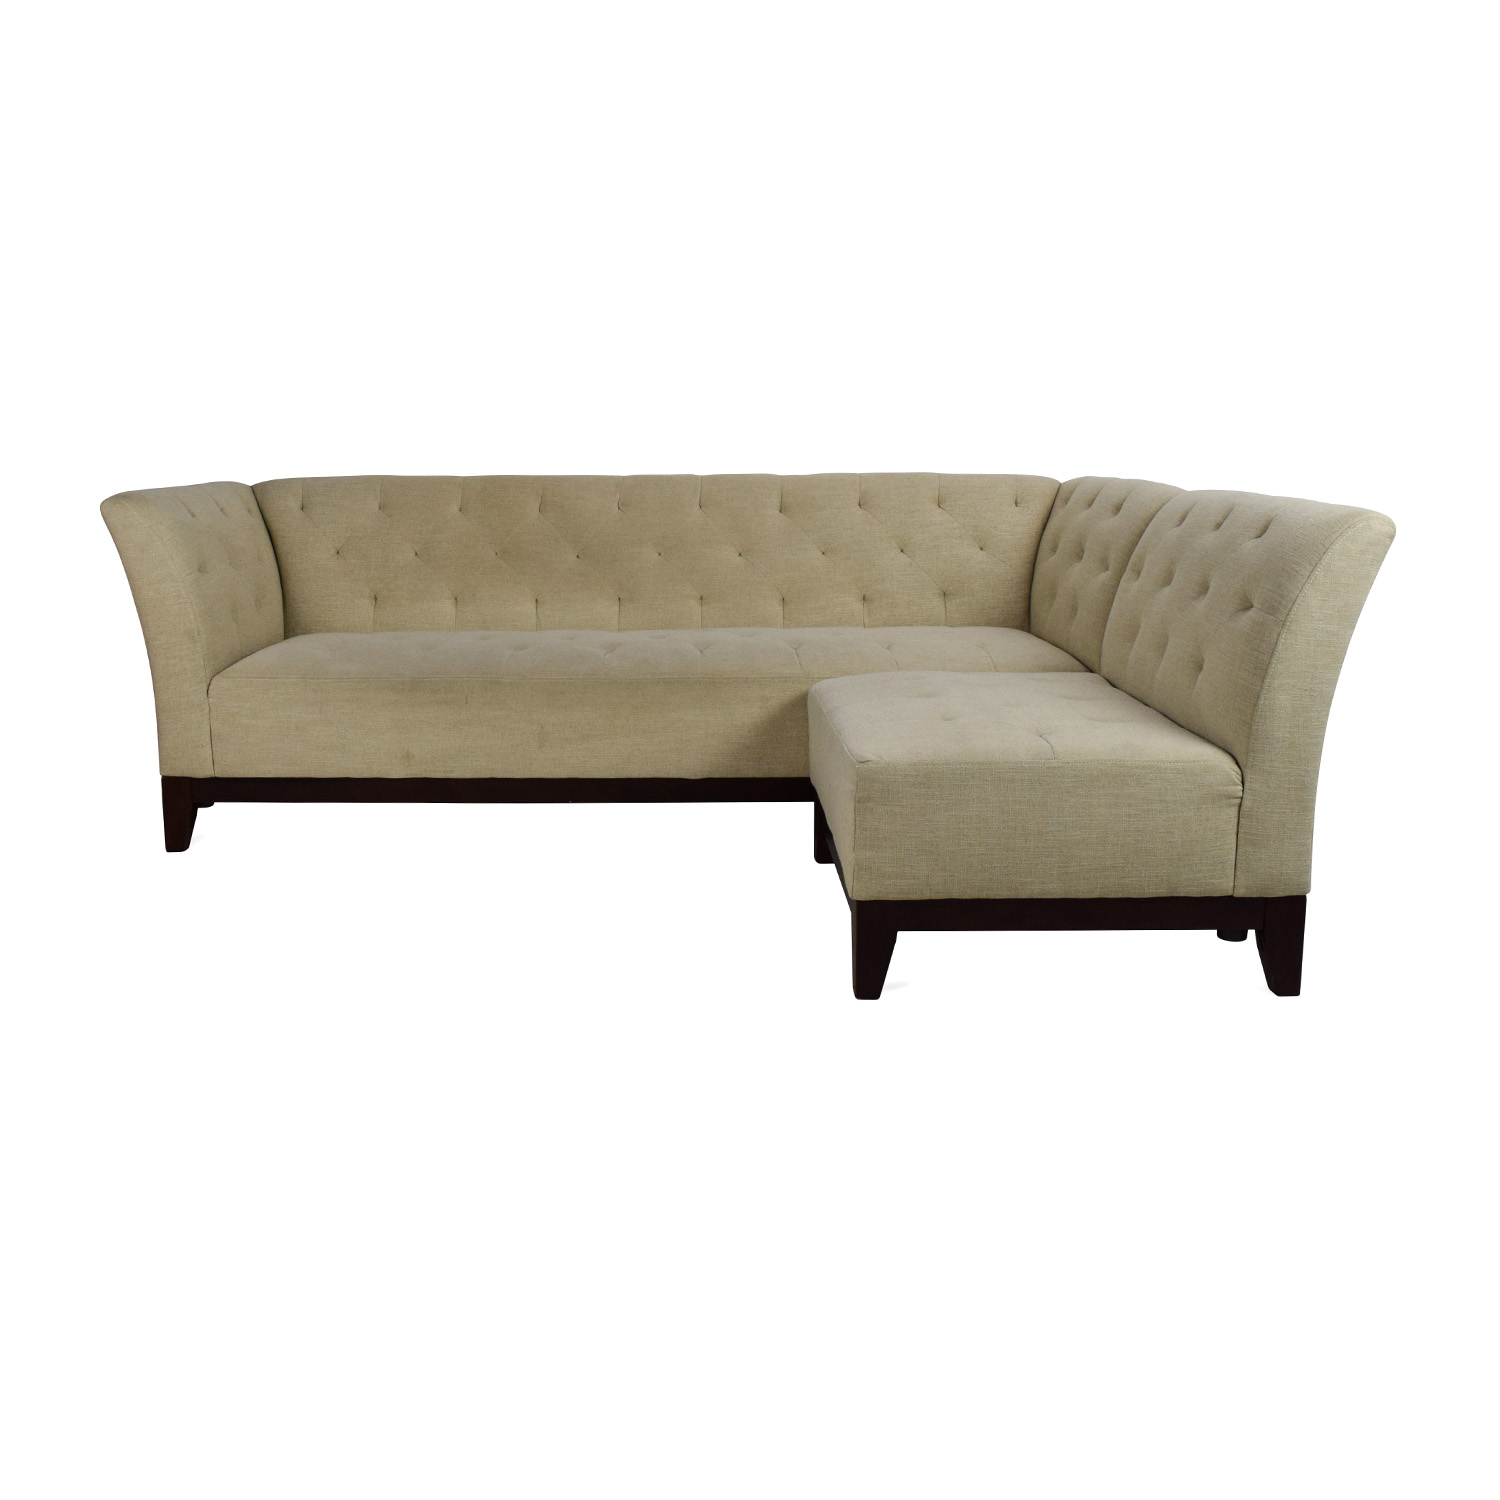 Macys Macys Tufted Sofa With Modular Chaise Sofas